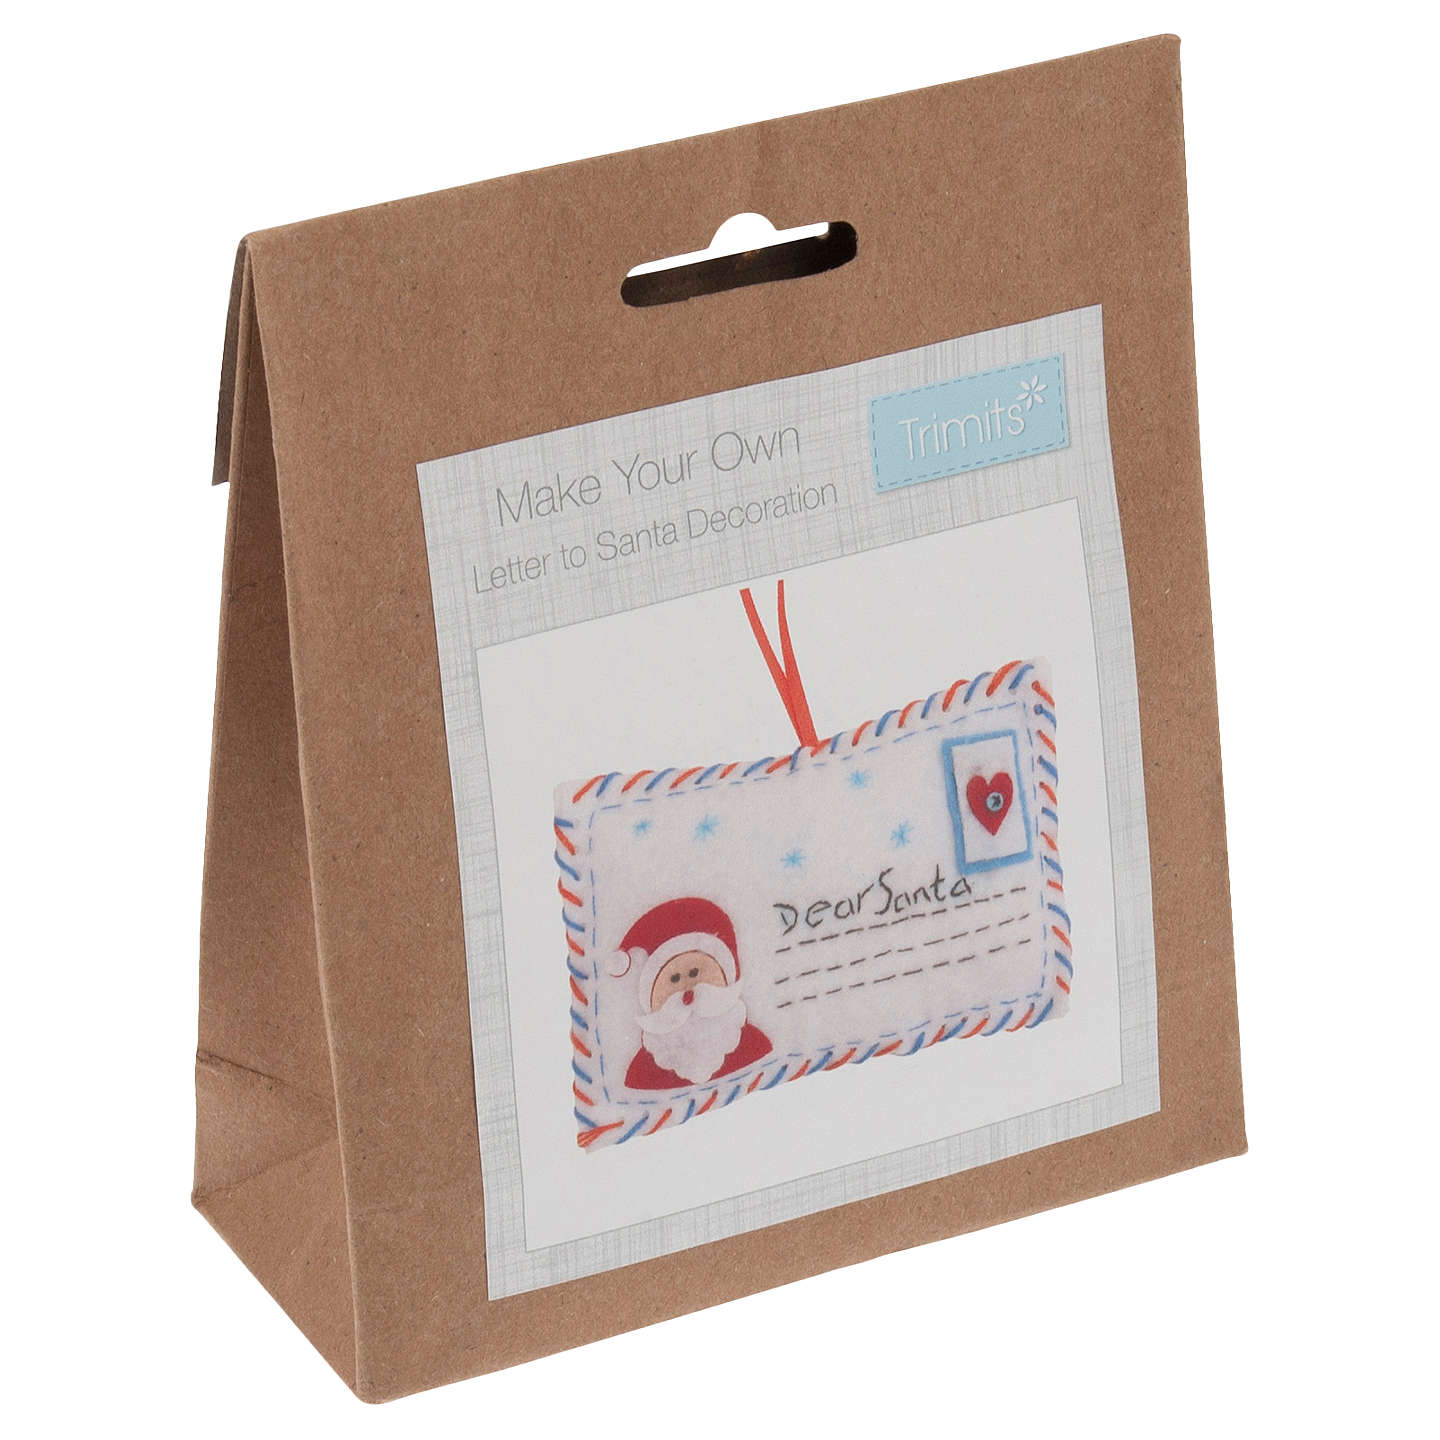 Trimits christmas letter to santa felt craft kit at john lewis buytrimits christmas letter to santa felt craft kit online at johnlewis spiritdancerdesigns Image collections